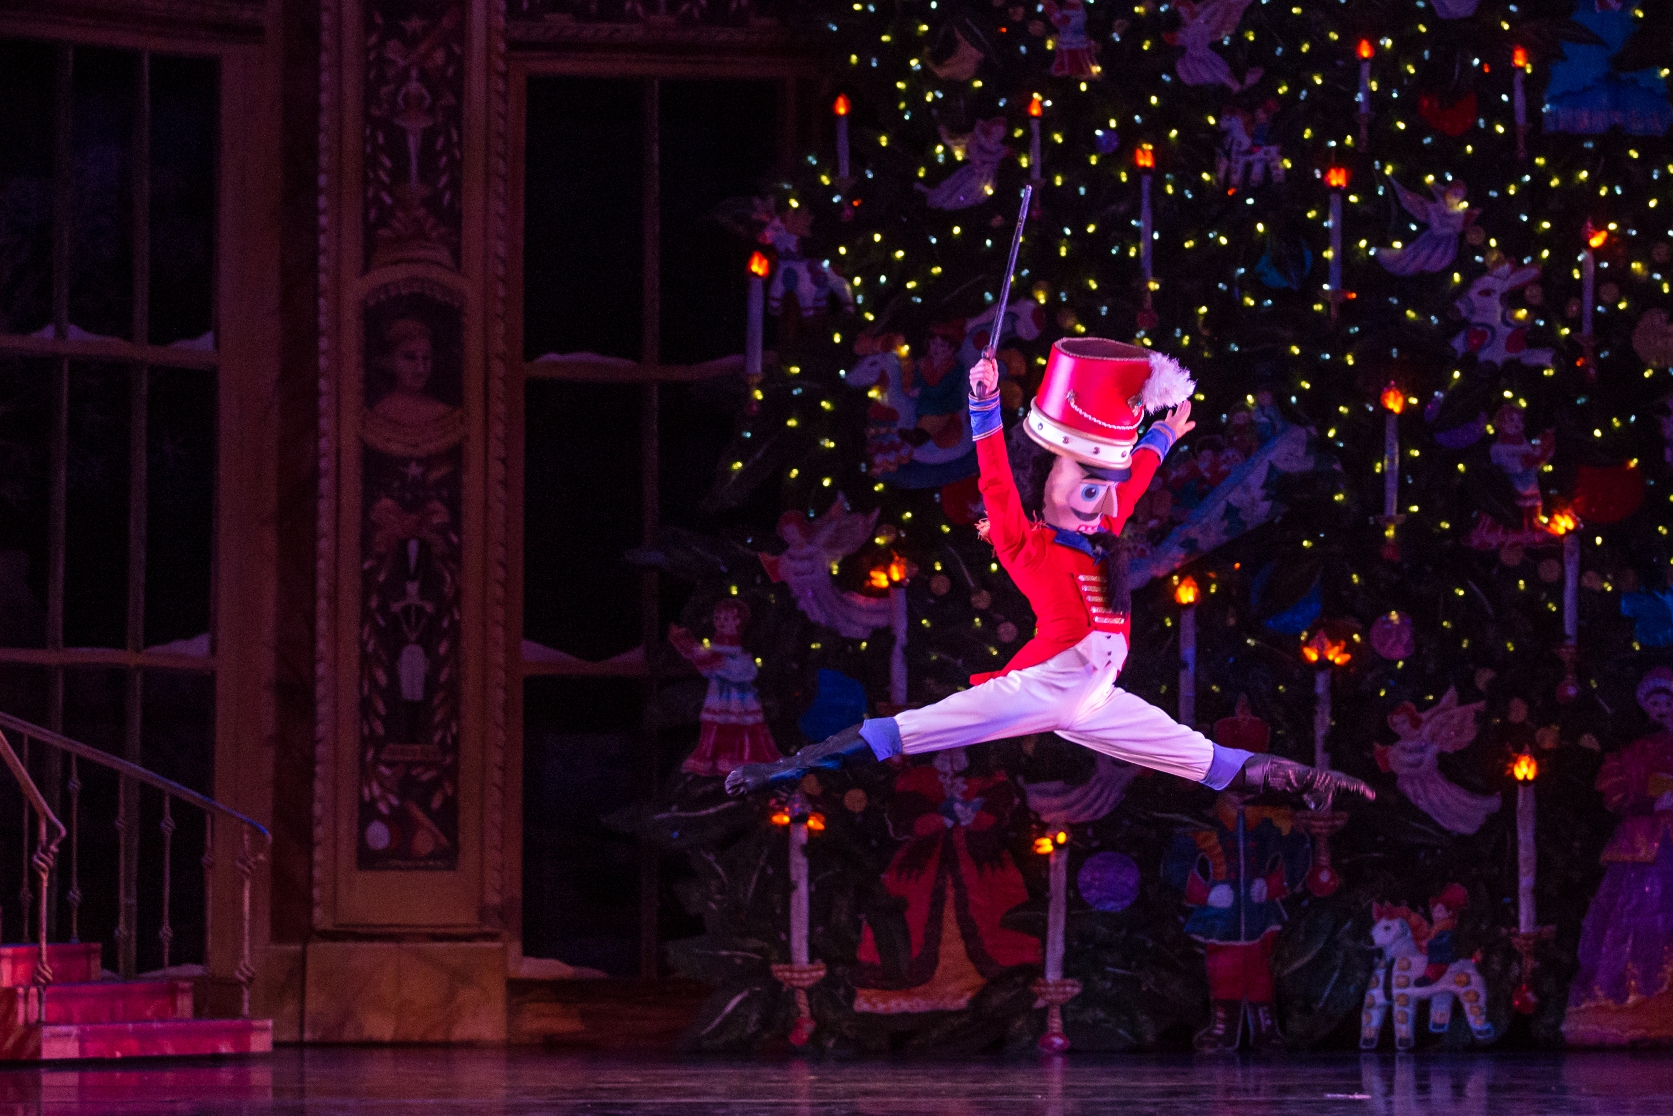 Celebrate Christmas by watching BalletMET's performance of The Nutcracker in the Ohio Theater. Located in Columbus, Ohio, Lykens Companies serves Columbus, Ohio's urban core with an eye toward historical preservation and restoration. We are deeply involved in the Short North, Victorian Village, Italian Village, Olde Towne East, and Weiland Park communities.